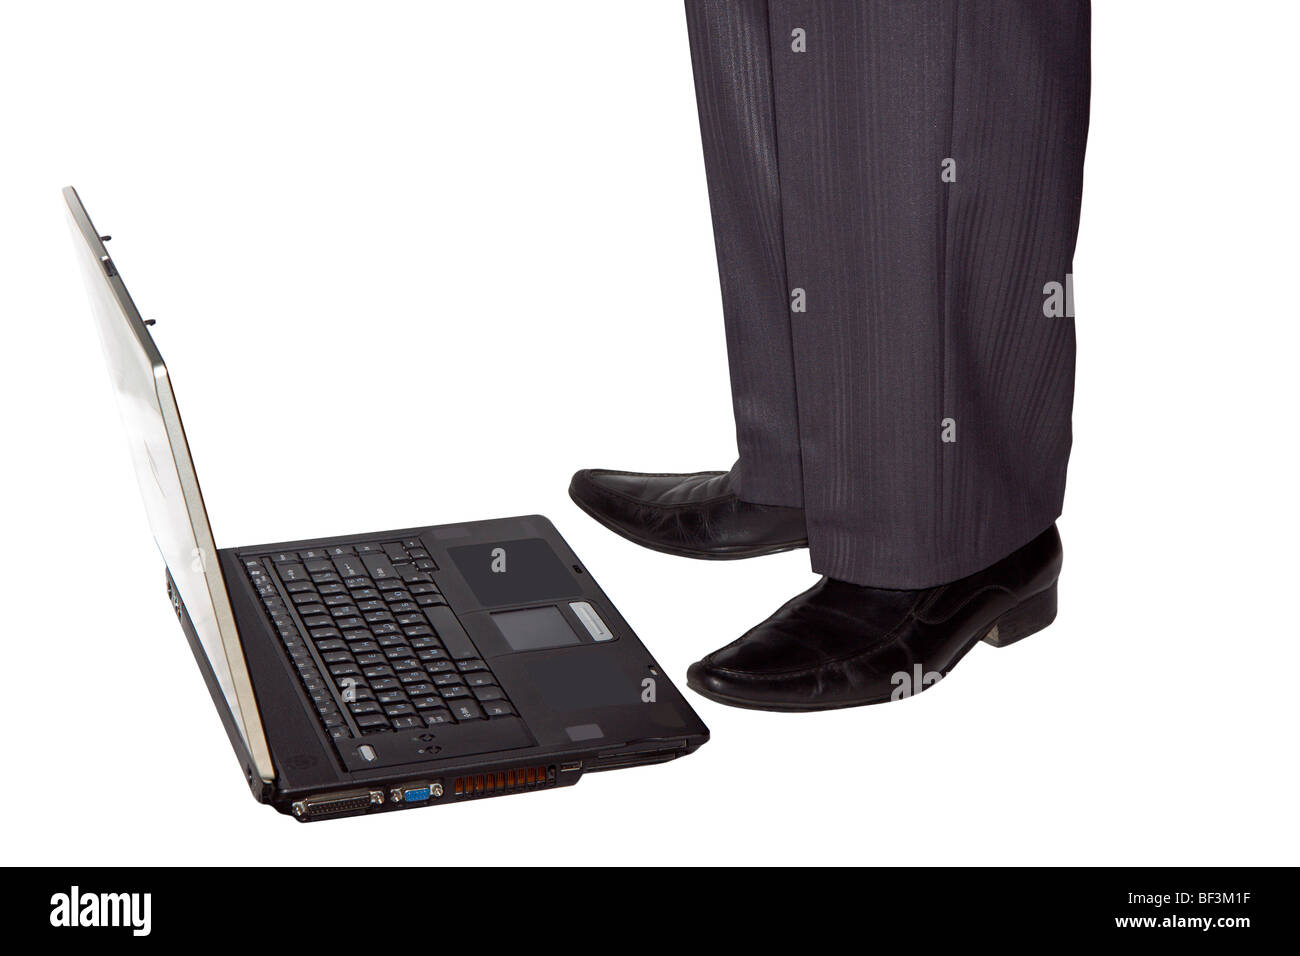 The opened laptop lies on a floor and nearby there is a man Stock Photo